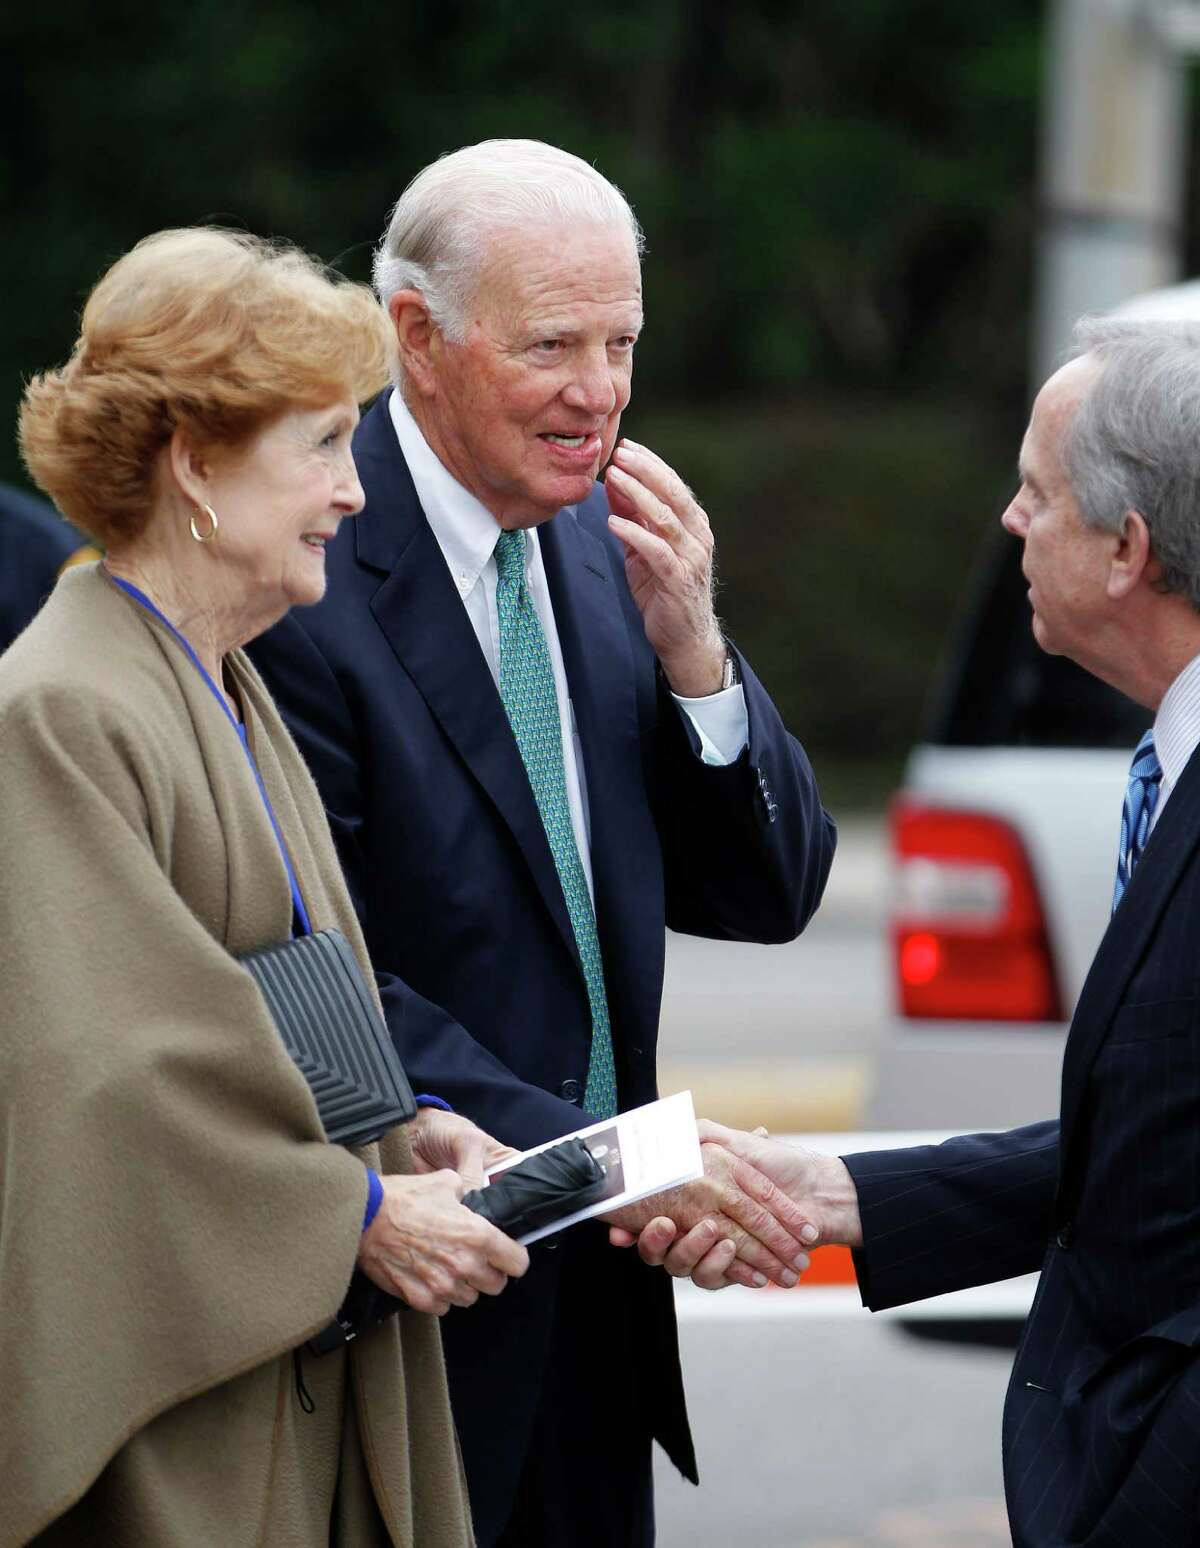 James and Susan Baker are greeted by David Jones during an invitation-only ceremony officially renaming the Preston Street Bridge near downtown in late Robert A. Mosbacher, Sr.'s honor on Wednesday, Jan. 20, 2016, in Houston. The event was attended by Former President and Mrs George H. W. Bush and former Secretary of State and Mrs. James A. Baker, III will join the family, friends and former colleagues of the late Robert A. Mosbacher, Sr.